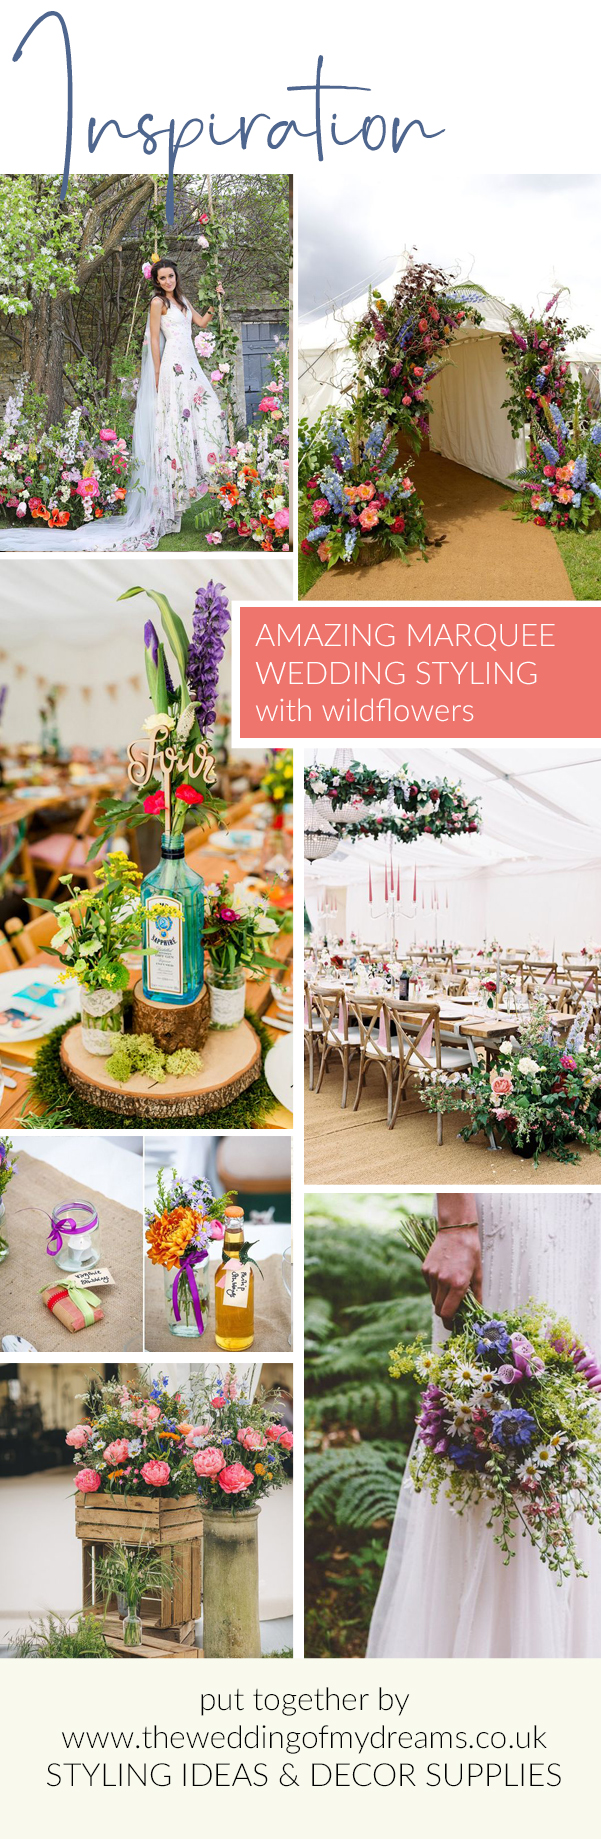 marquee wedding ideas with bright wildflowers hanging designs venue styling decorations The Wedding of my Dreams